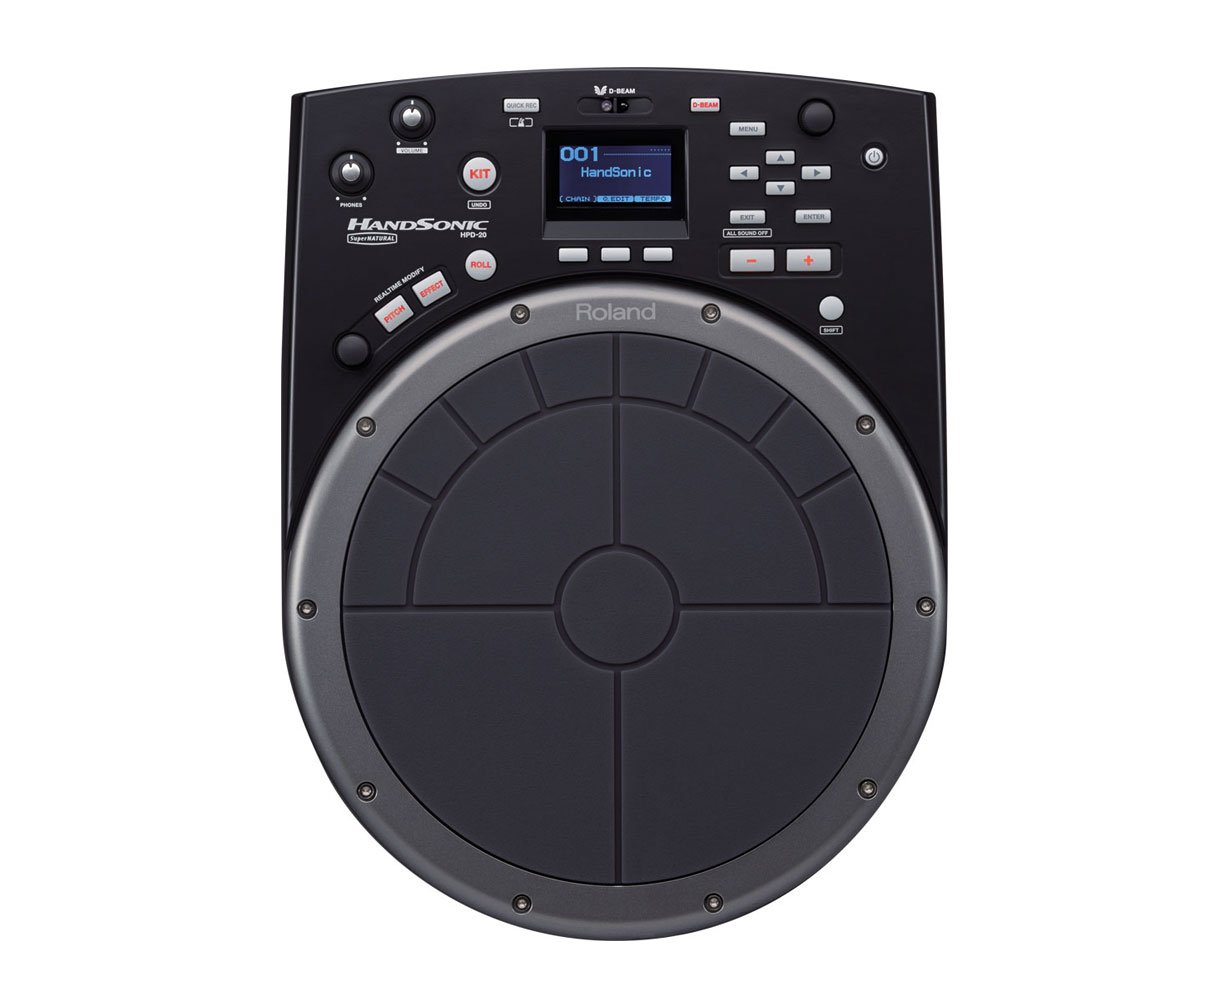 Roland HandSonic HPD-20 Digital Hand Percussion Controller - Black by Roland